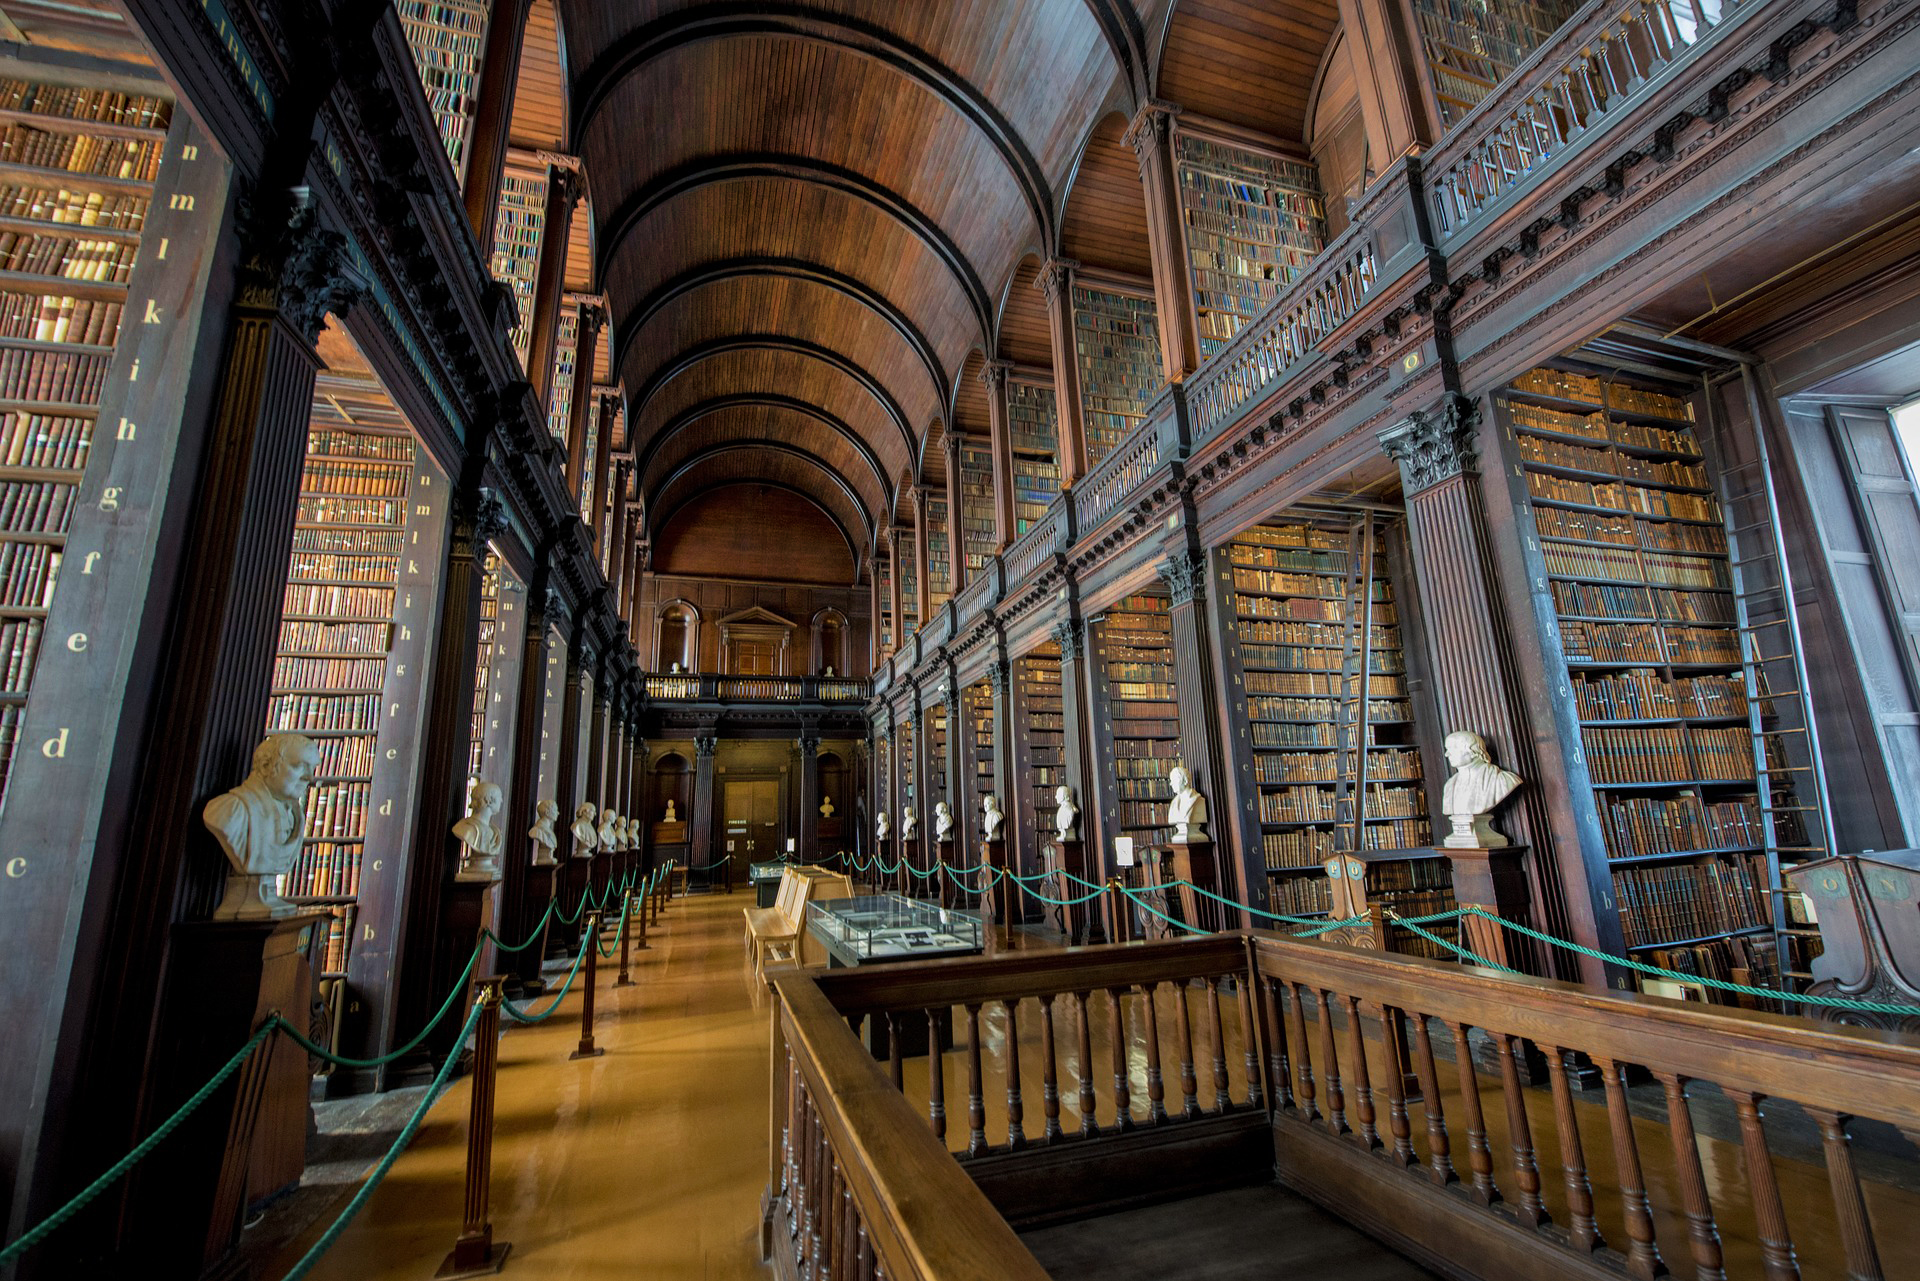 Towering bookshelves at Trinity College, Ireland